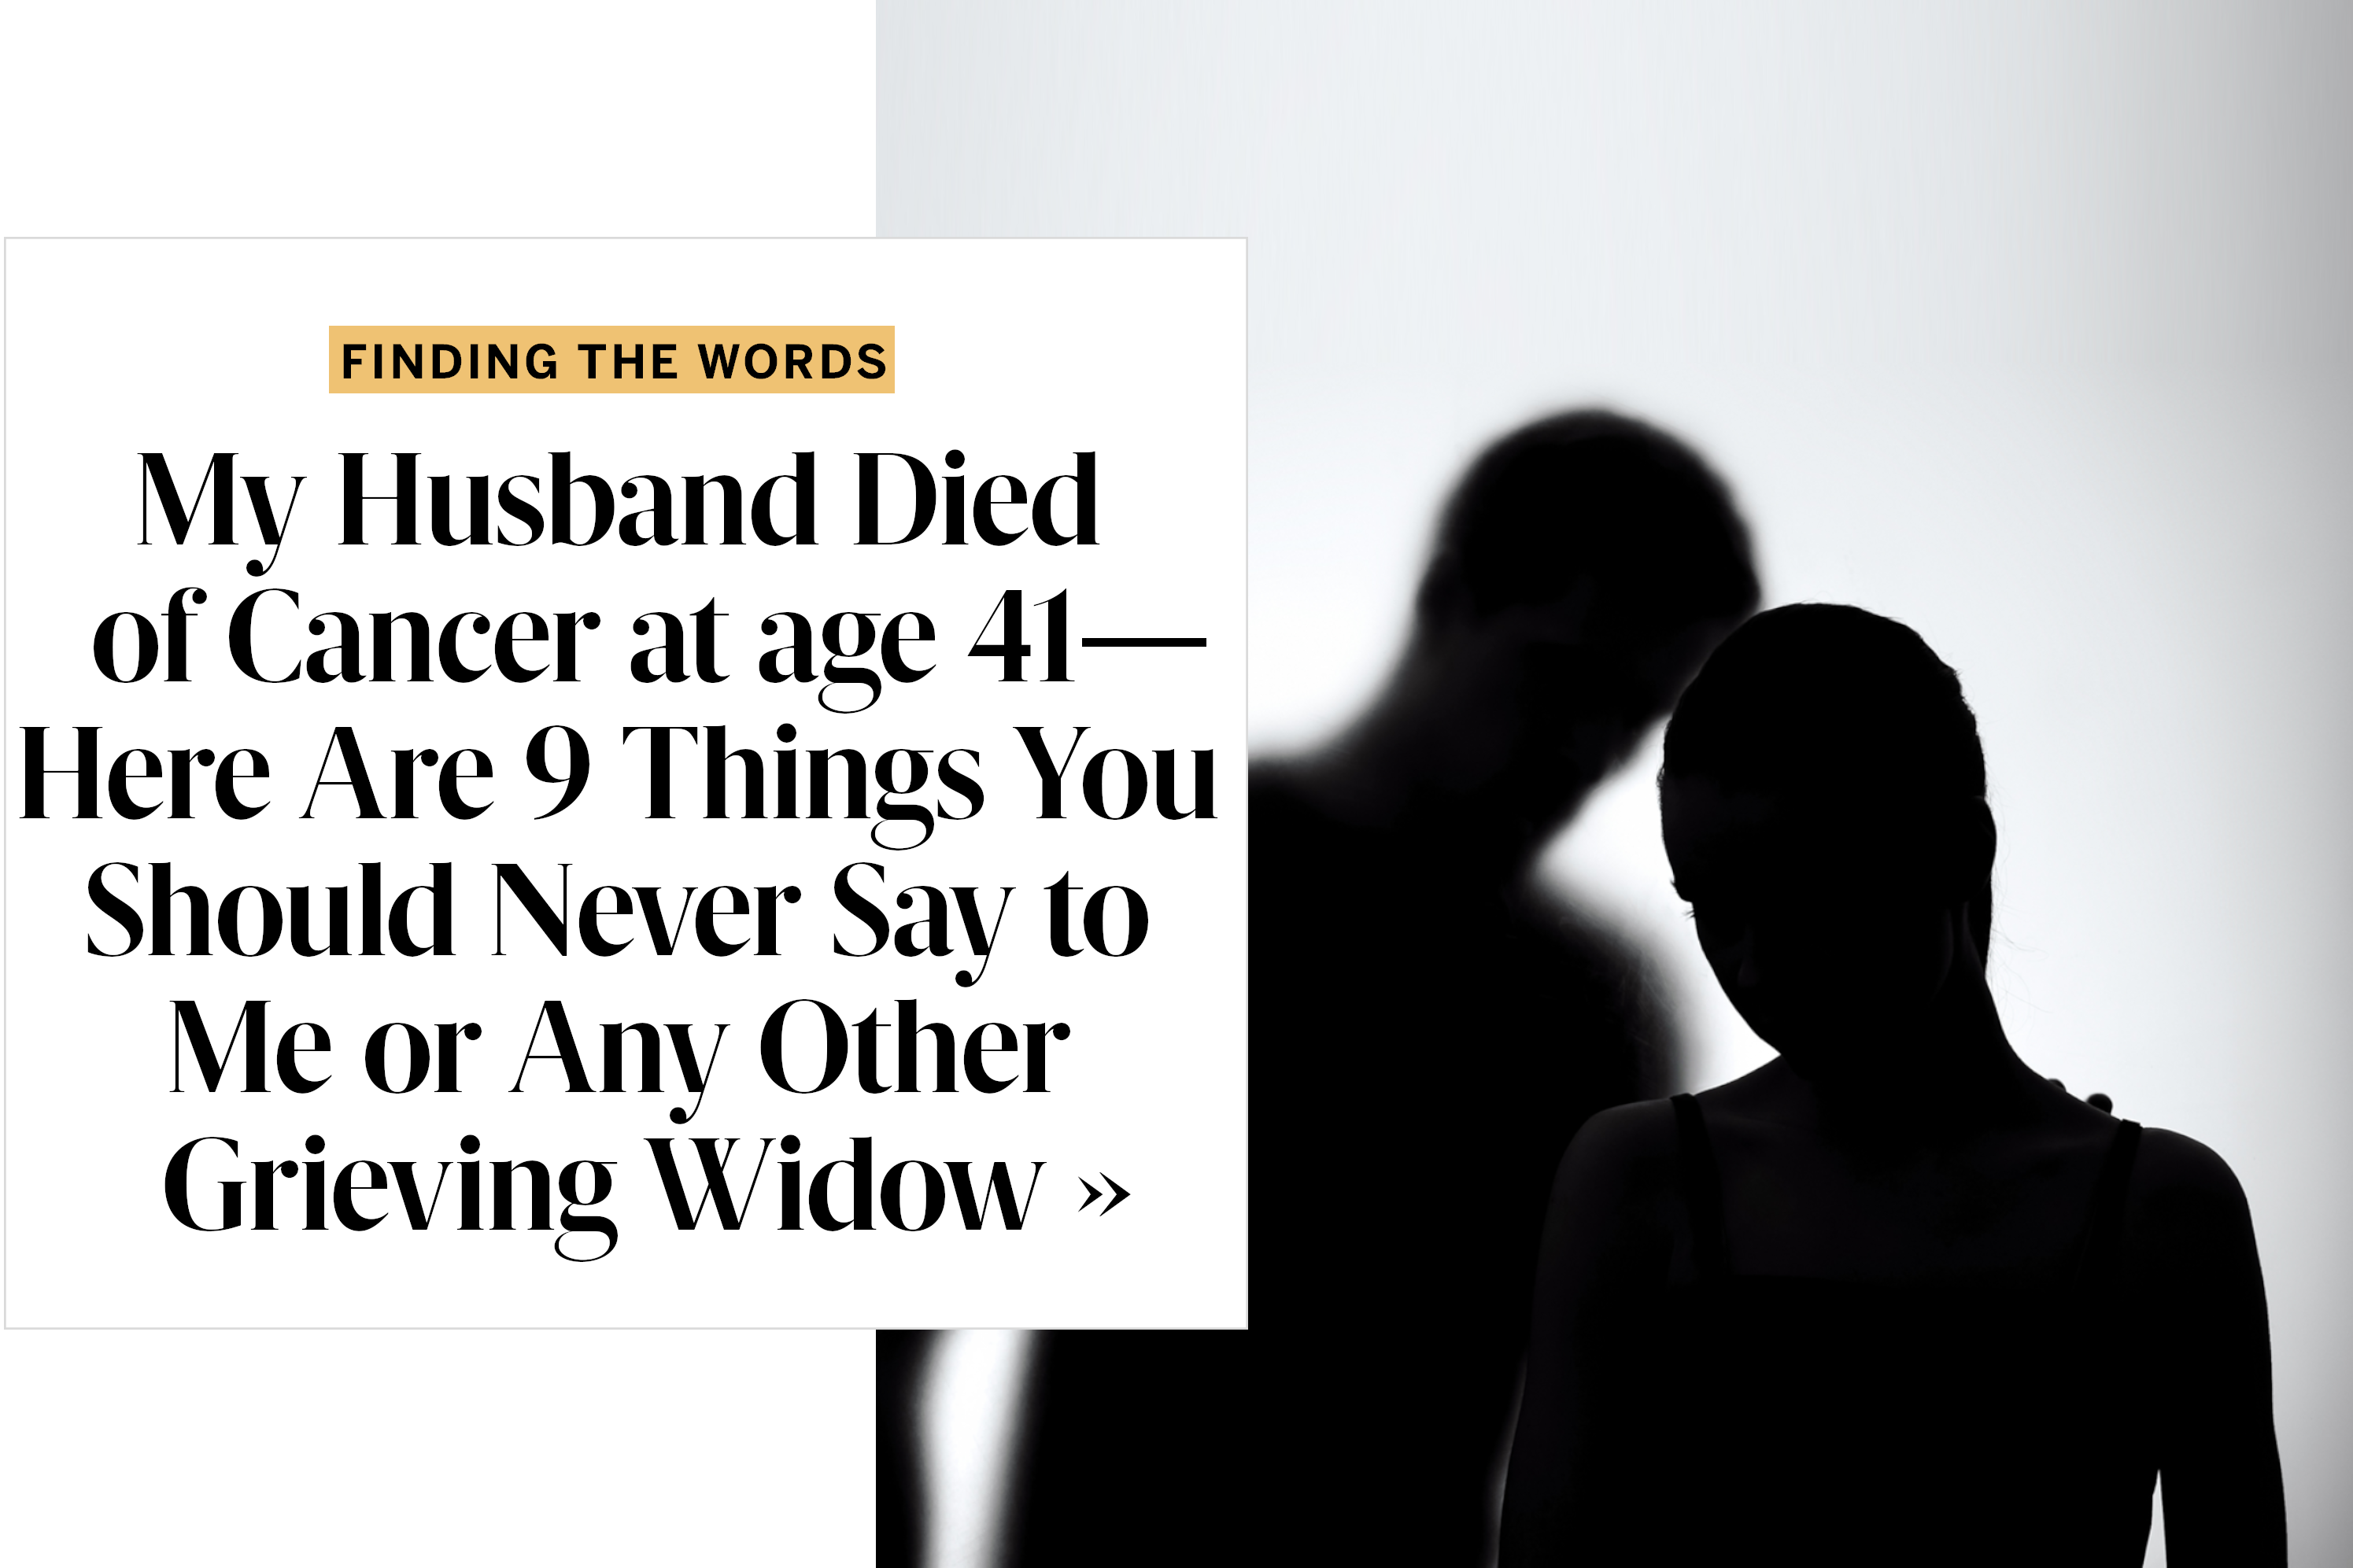 My Husband Died of Cancer at age 41—Here Are 9 Things You Should Never Say to Me or Any Other Grieving Widow